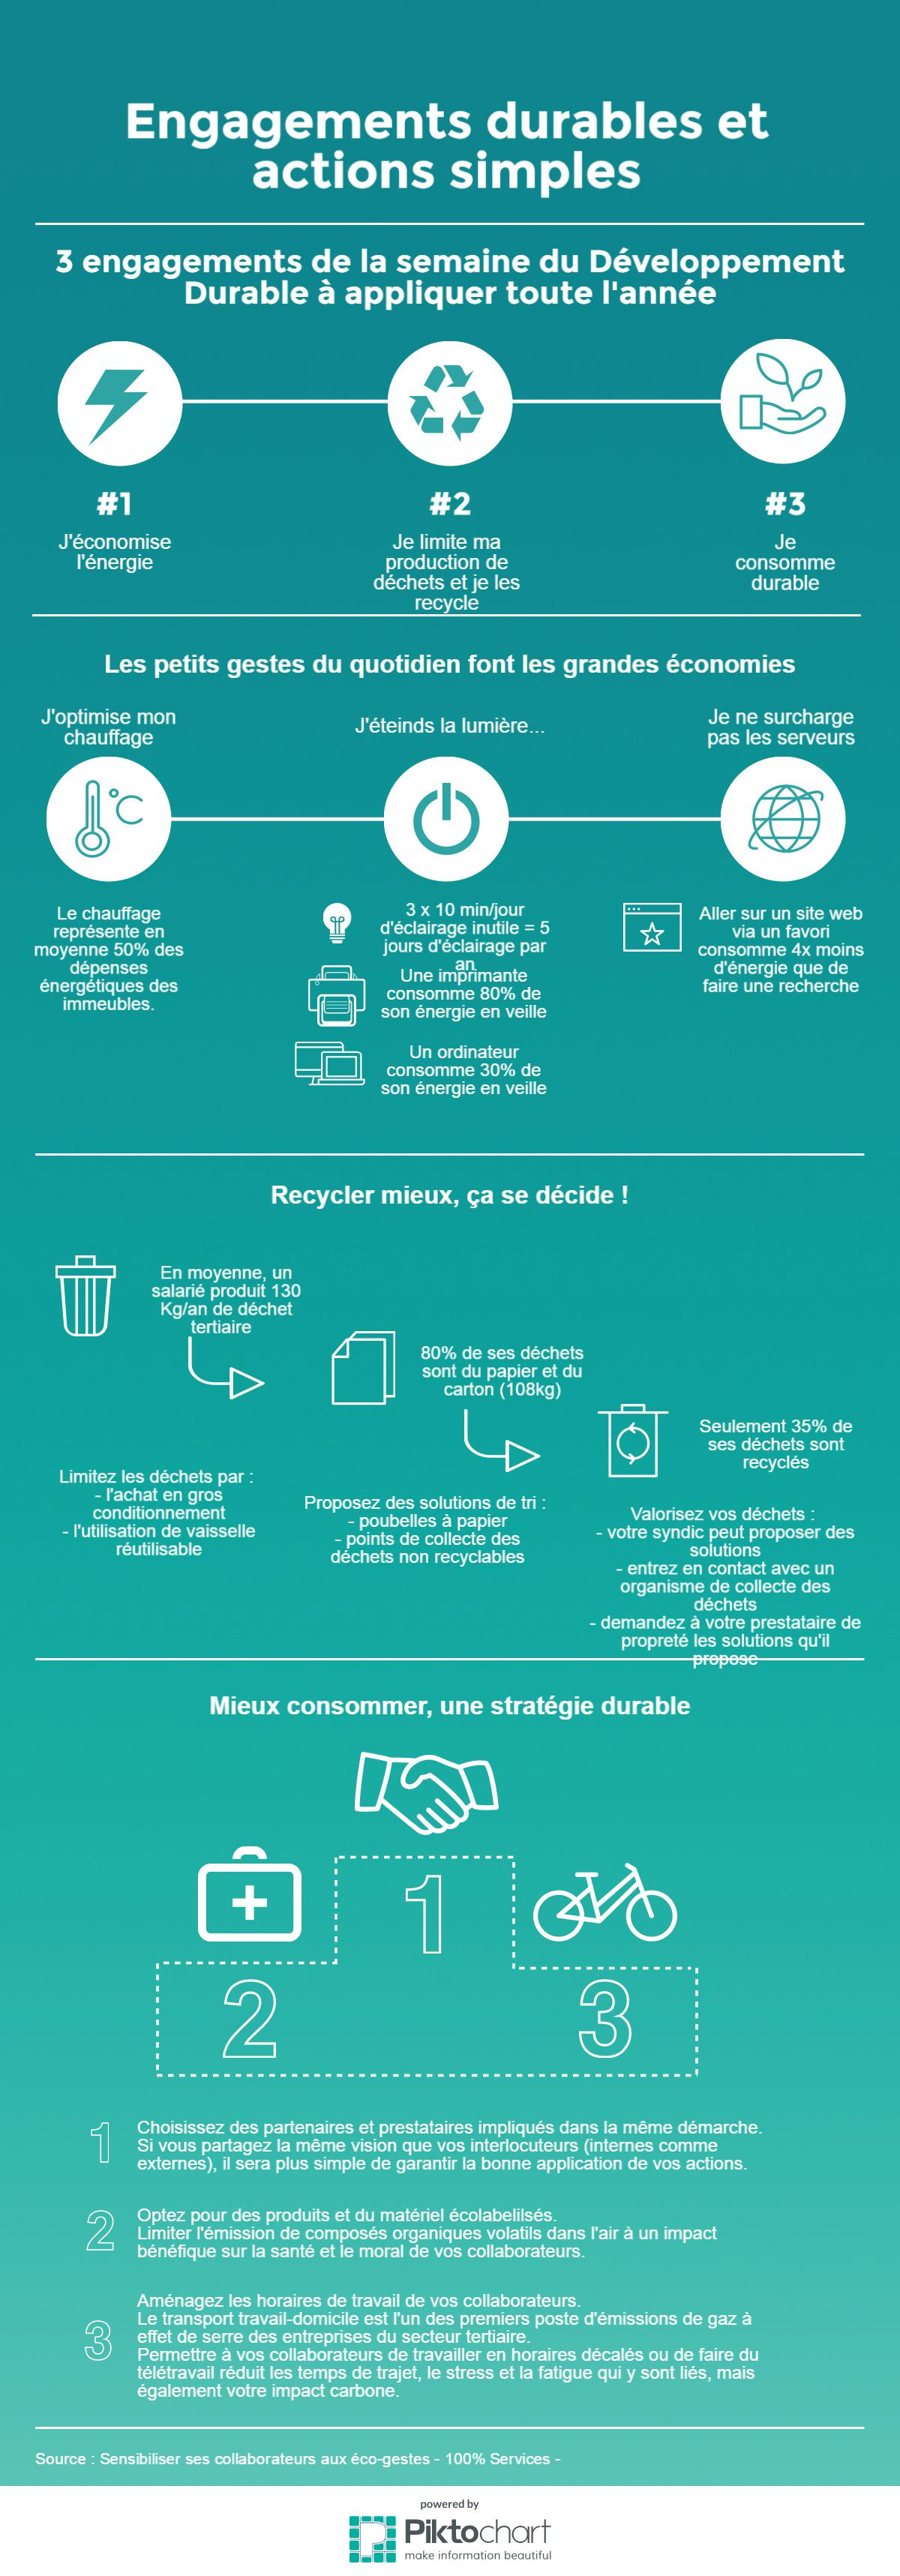 Engagements durables et actions simples